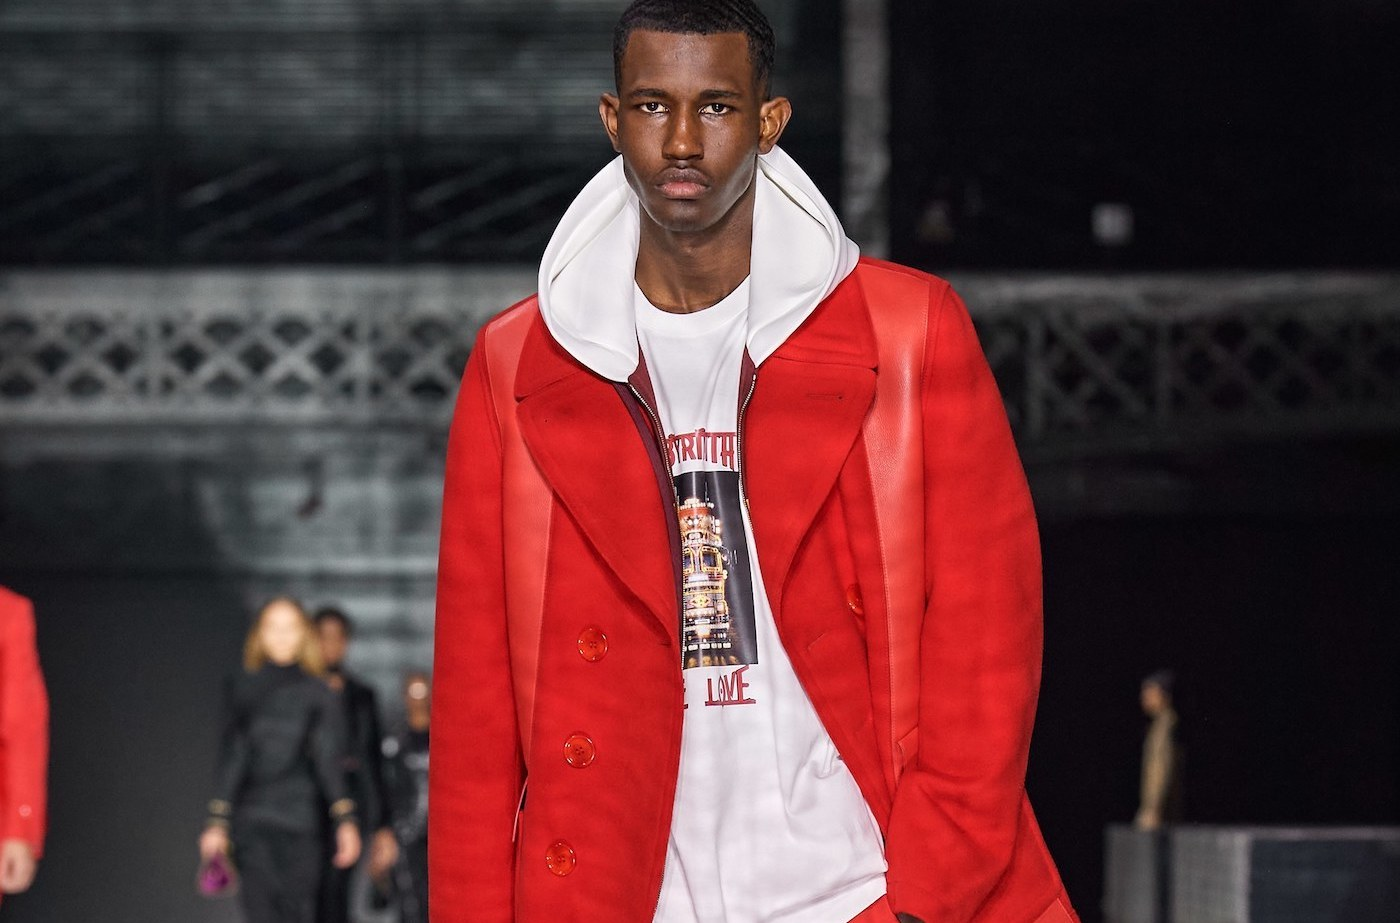 LFW: Burberry Autumn/Winter 2020 Collection